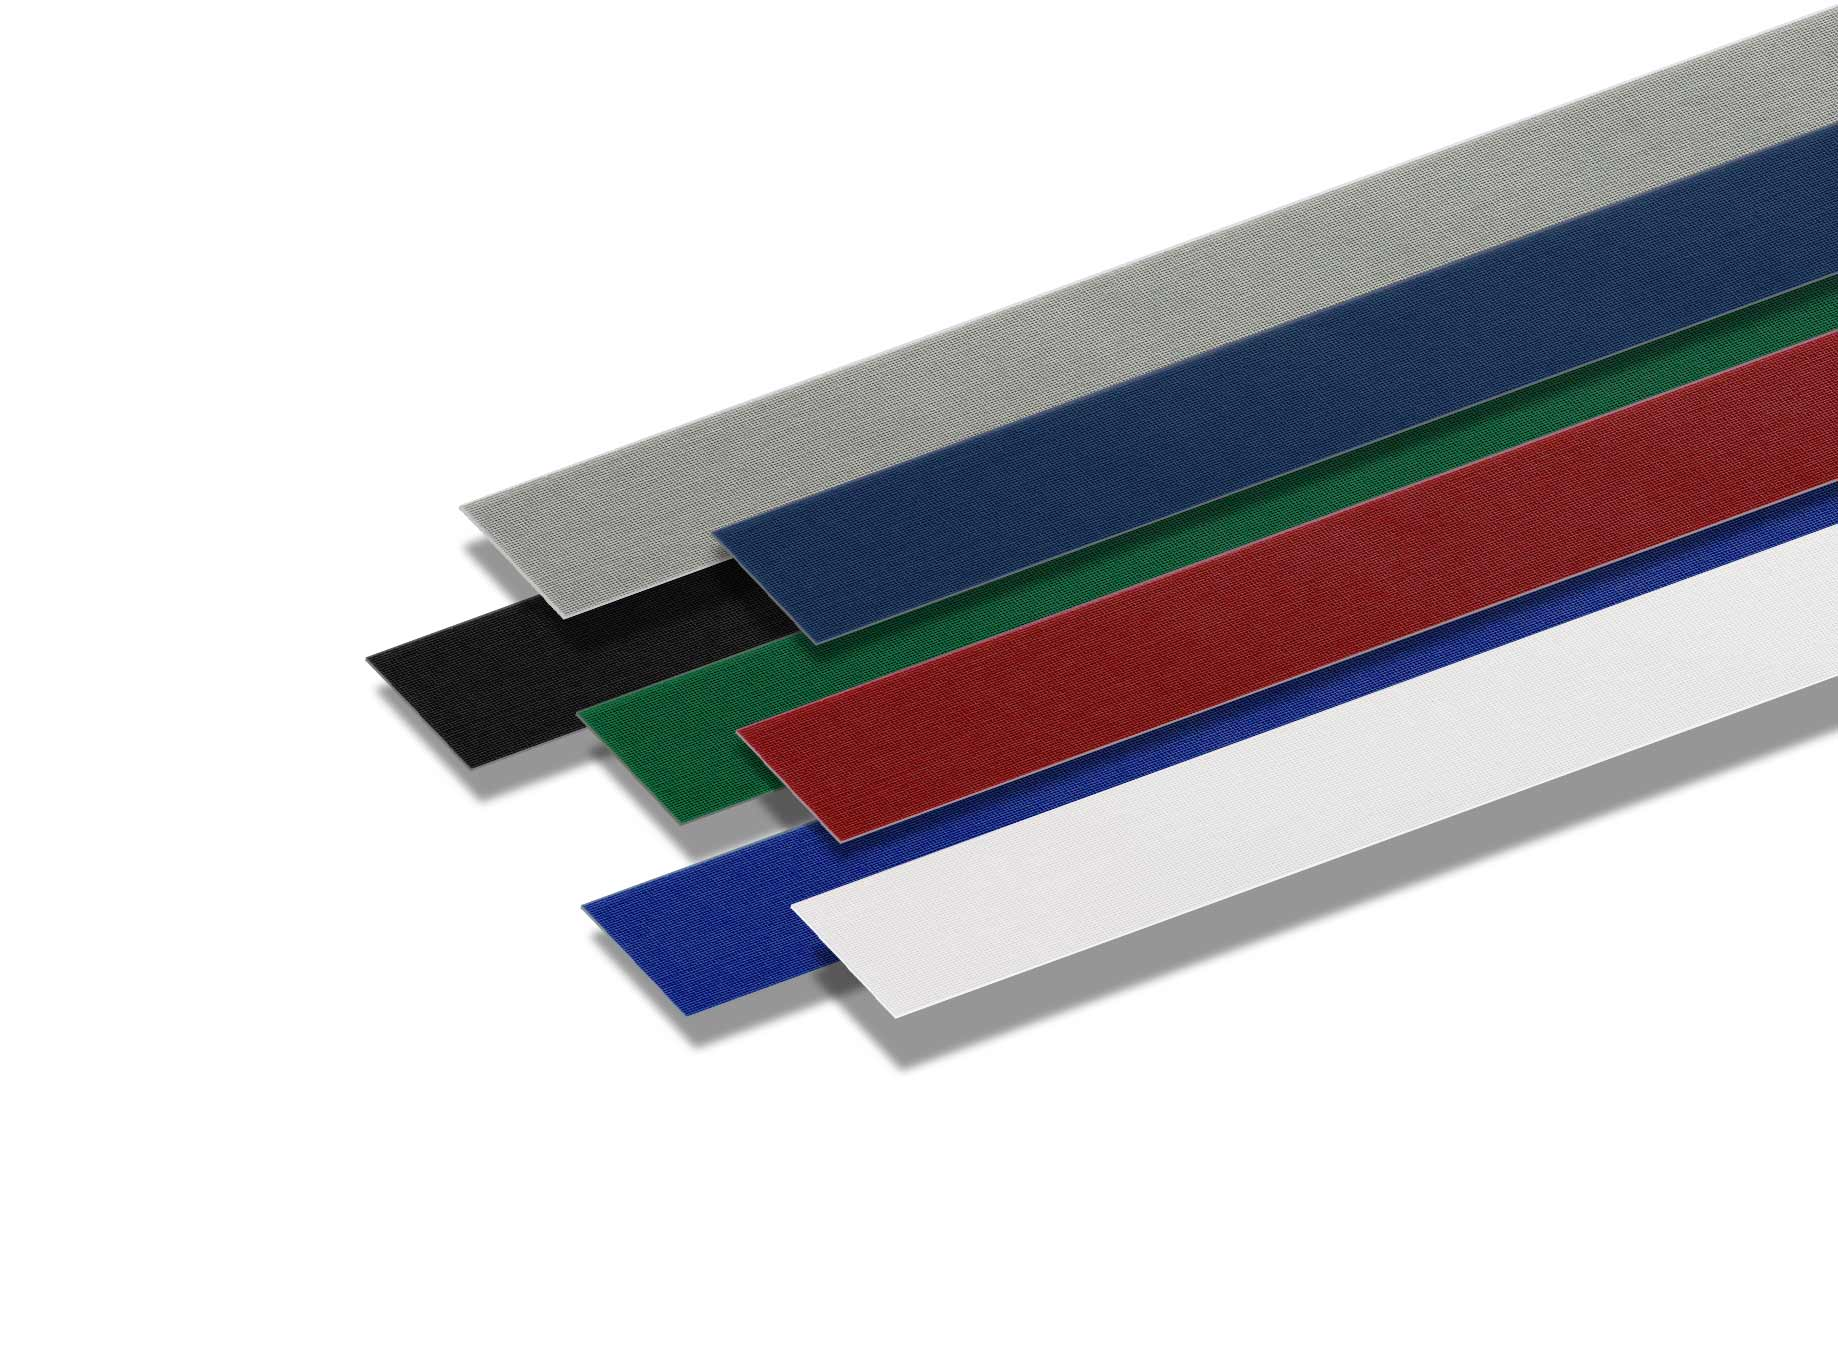 Planax Copy Strips for Copy Binder 5 from Total PFS